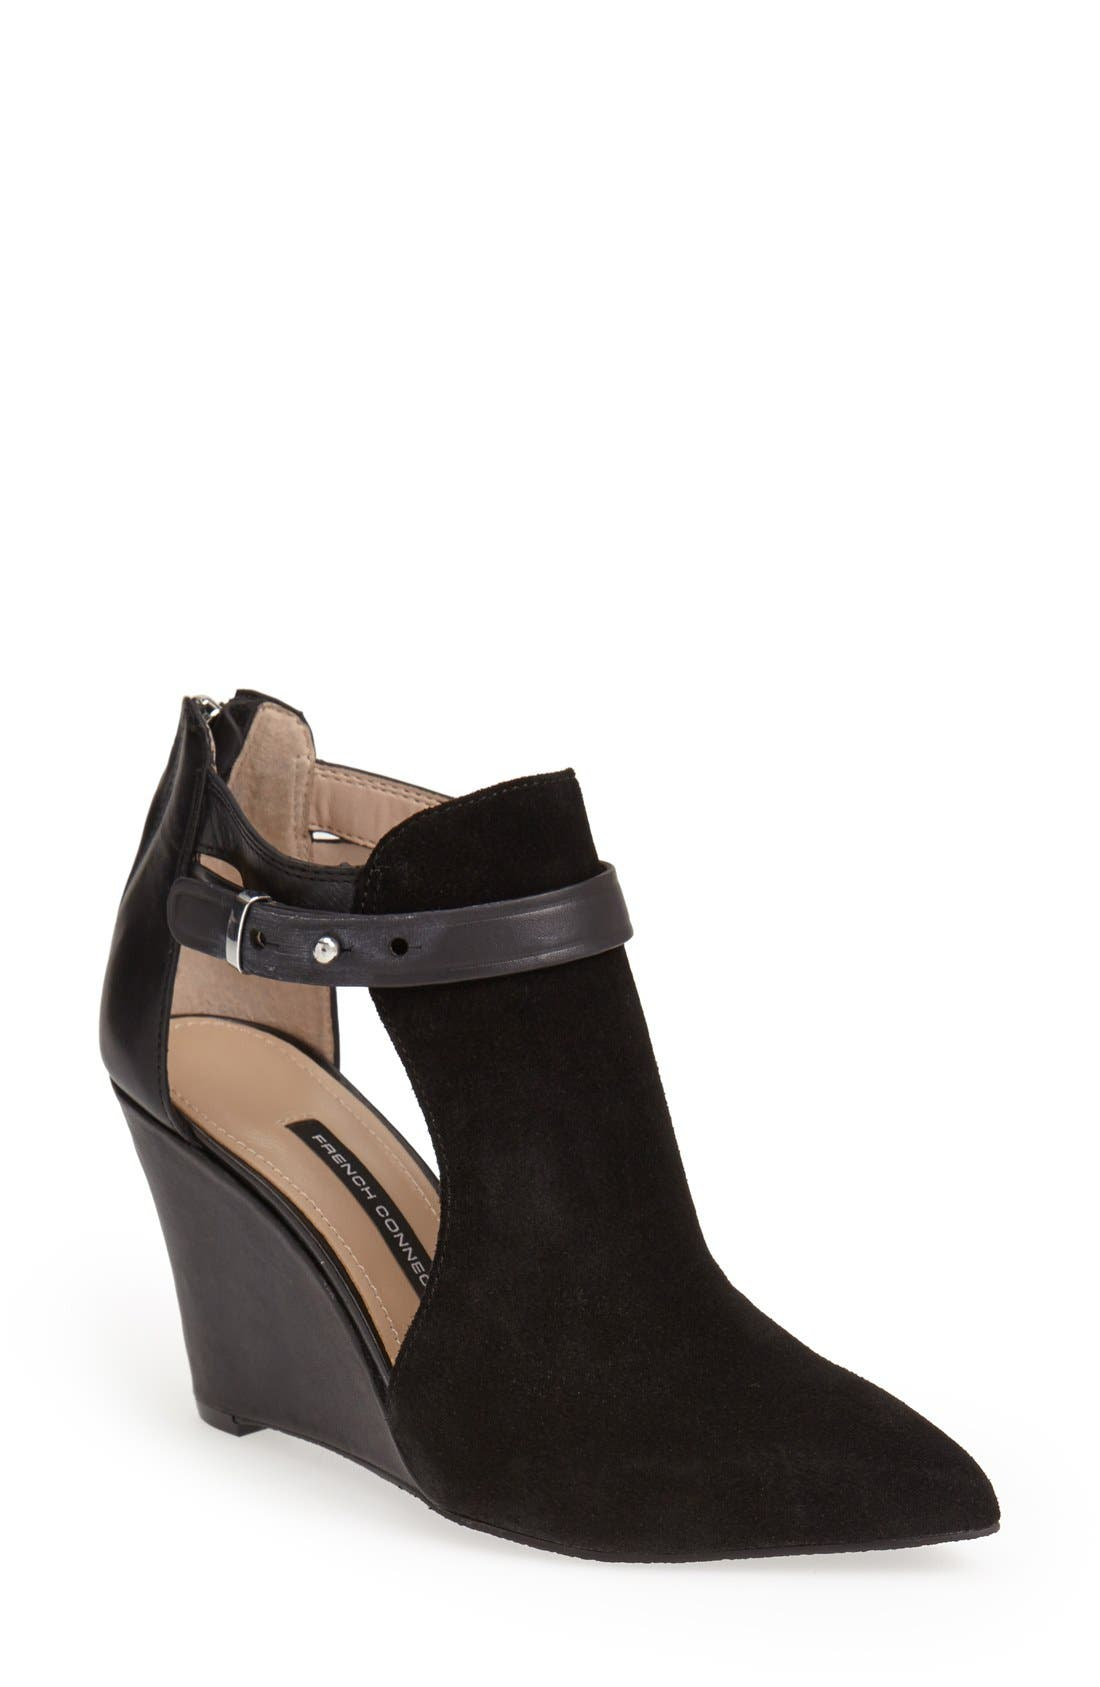 Main Image - French Connection 'Blyss' Wedge Boot (Women)